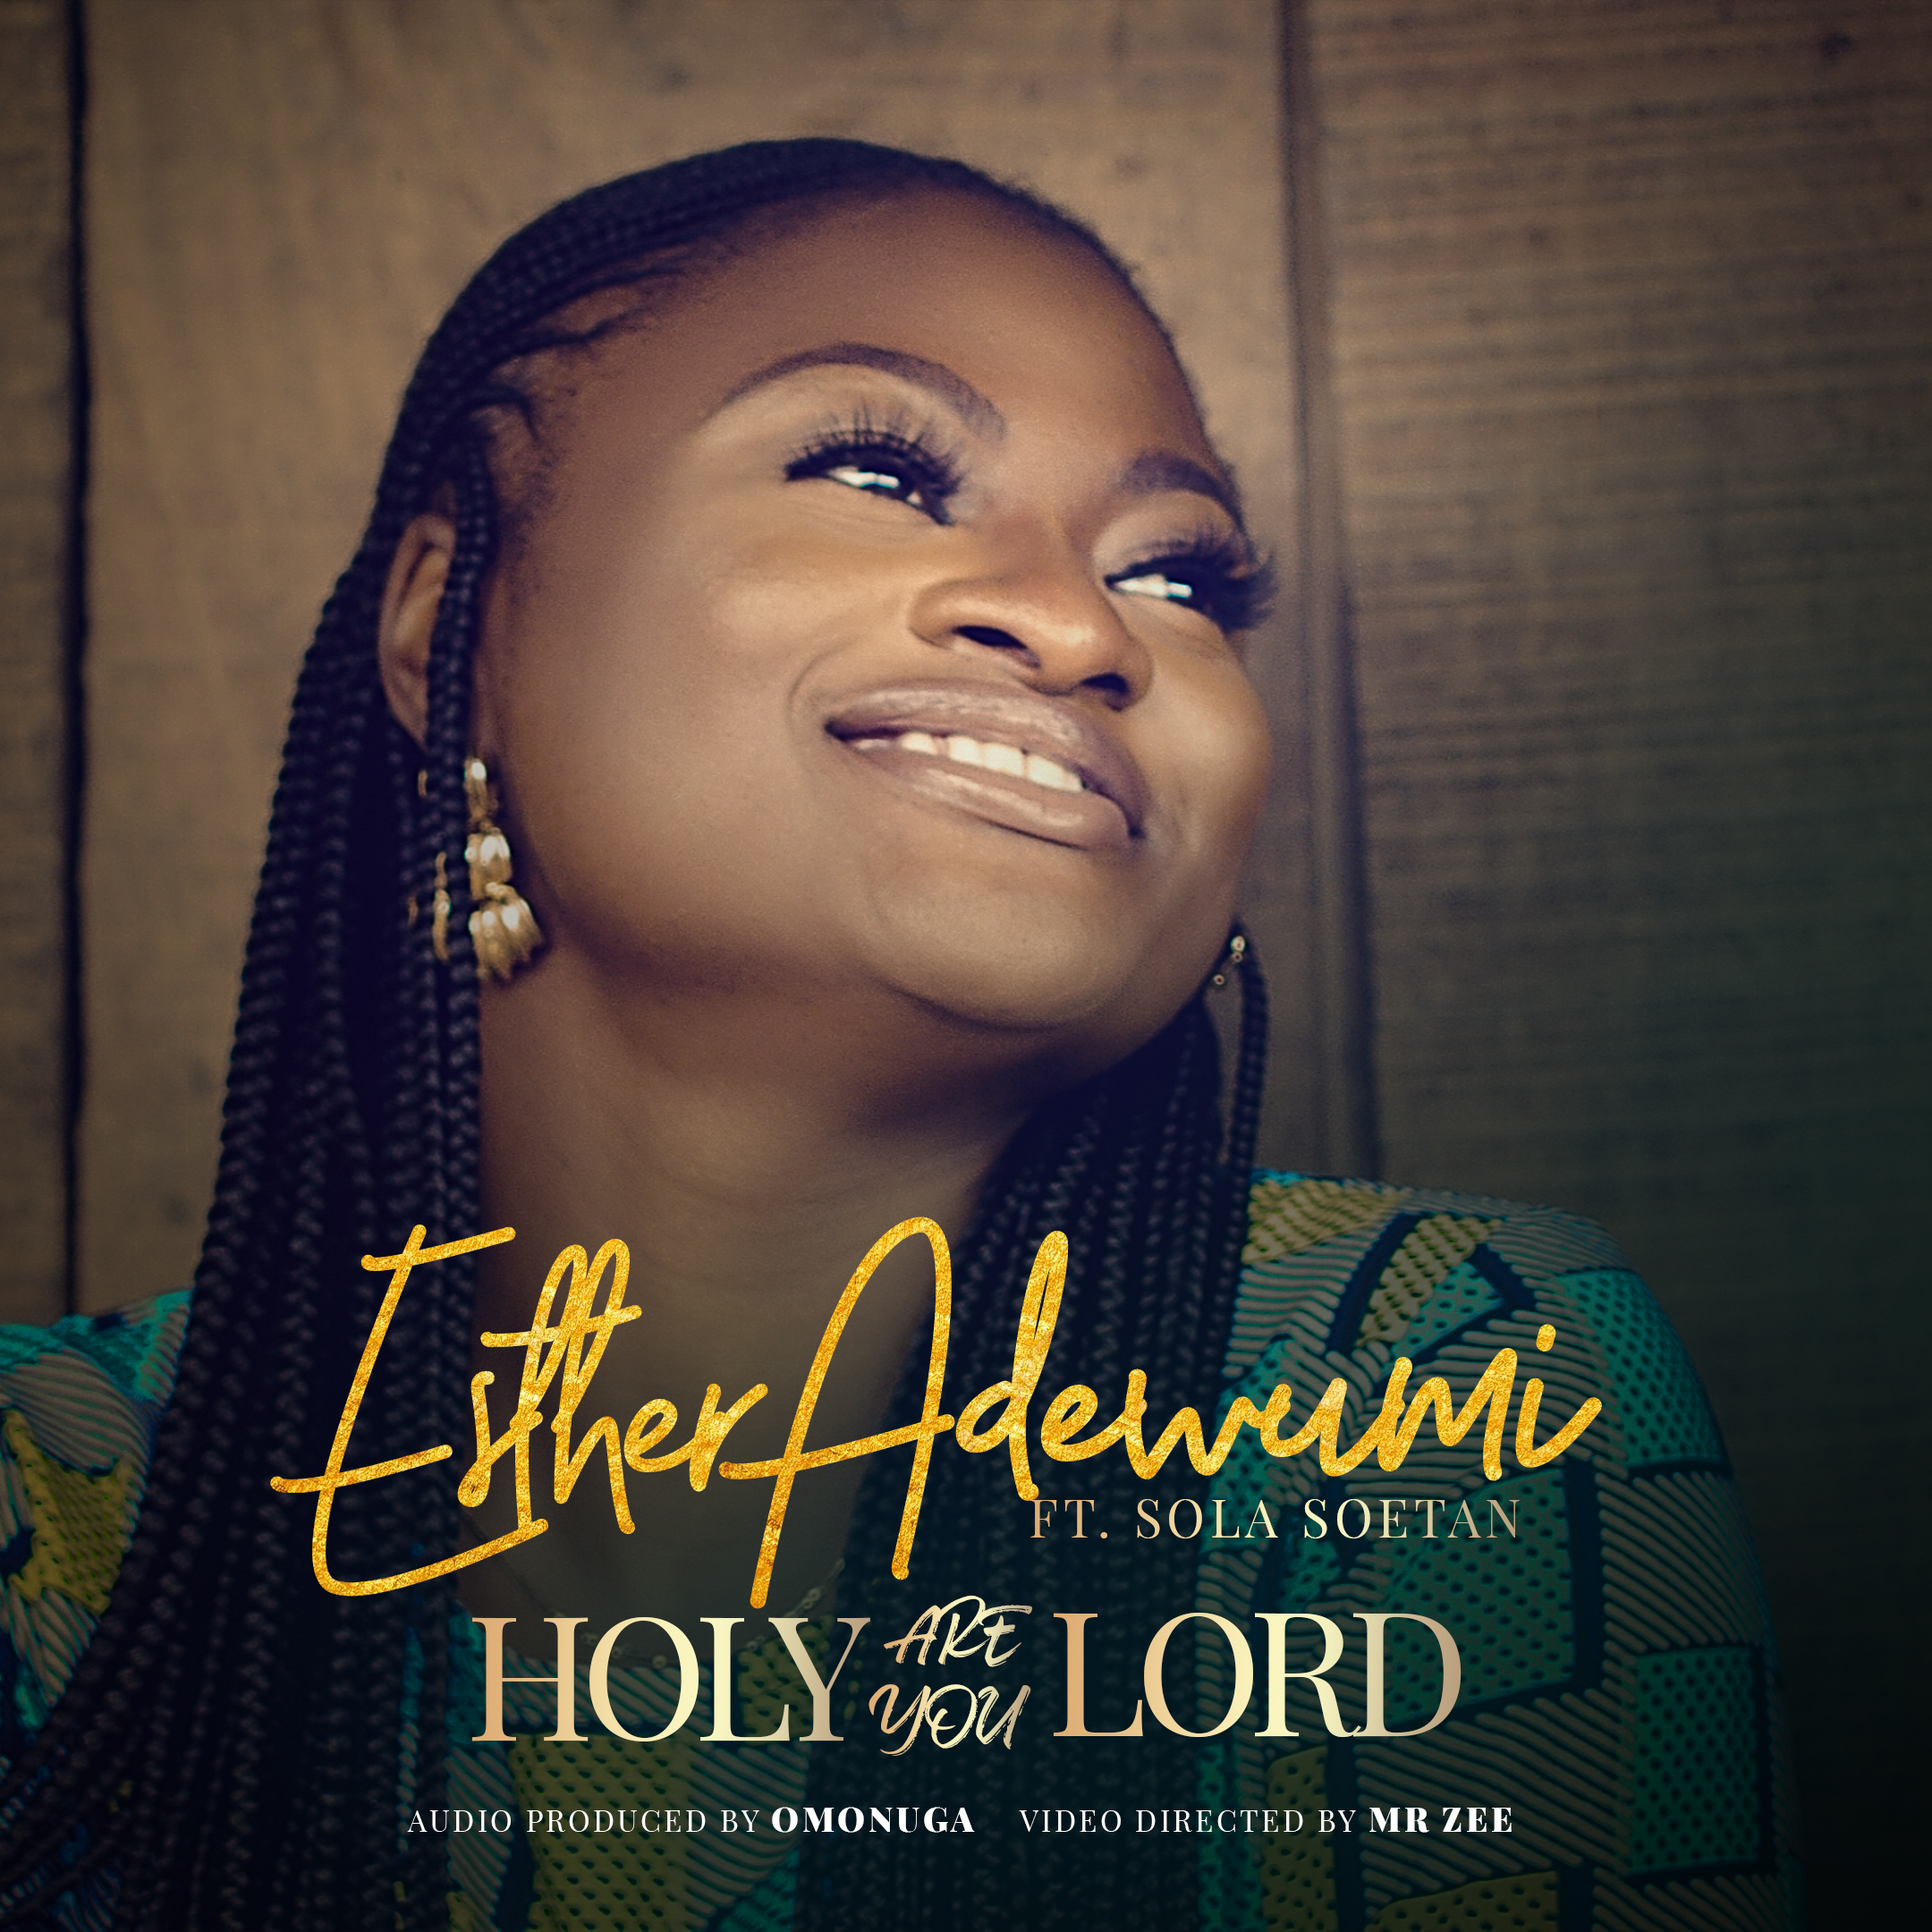 DOWNLOAD: Esther Adewumi - Holy Are You Lord Ft. Sola Soetan